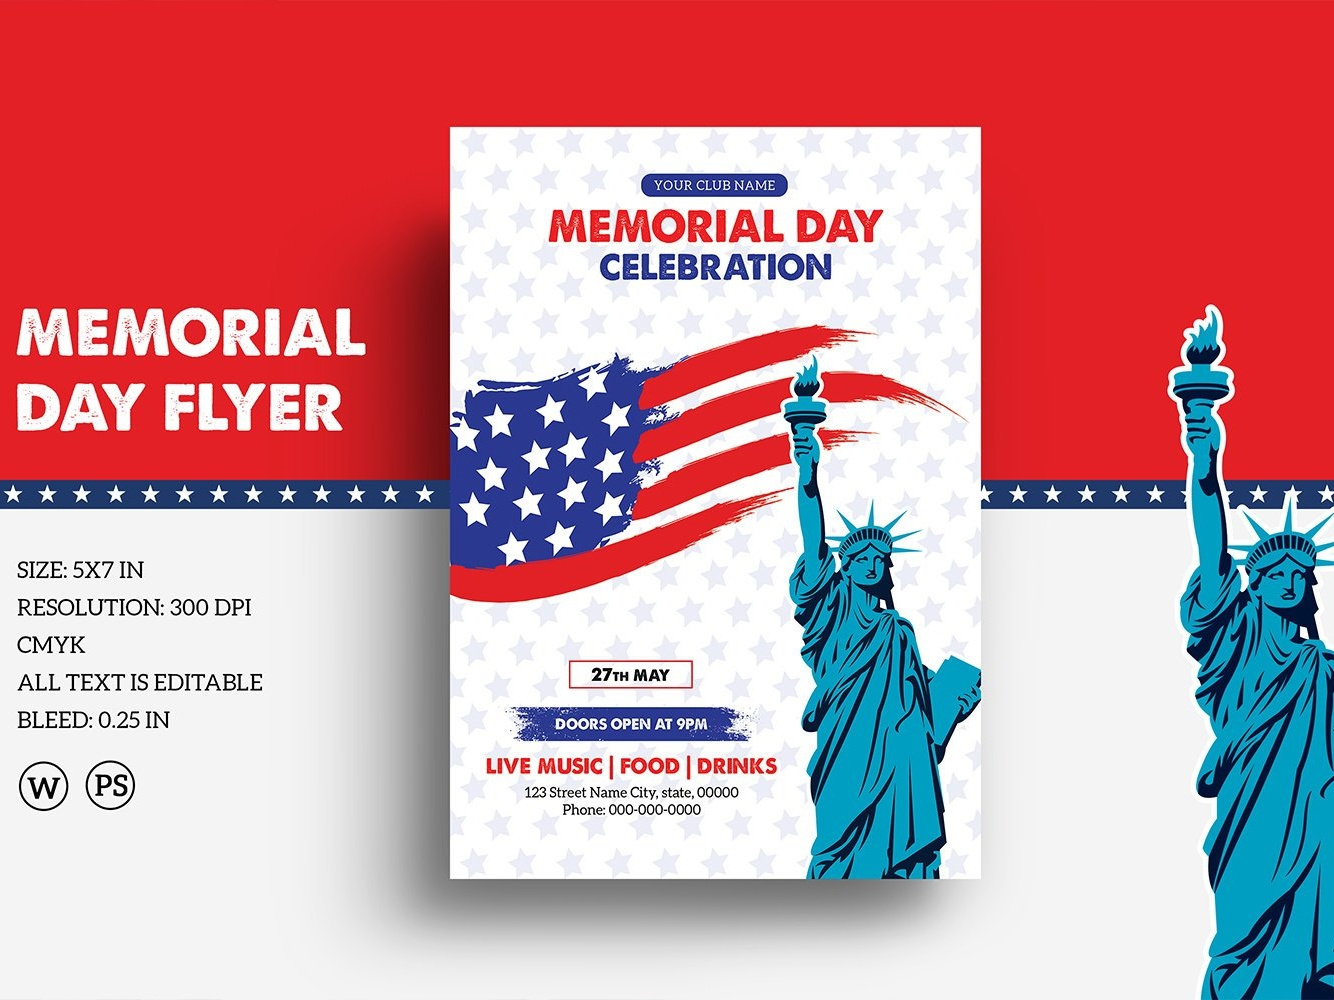 graphic regarding Closed Memorial Day Sign Printable named Us Memorial Working day Flyer Template by means of Mukhlasur Rahman upon Dribbble